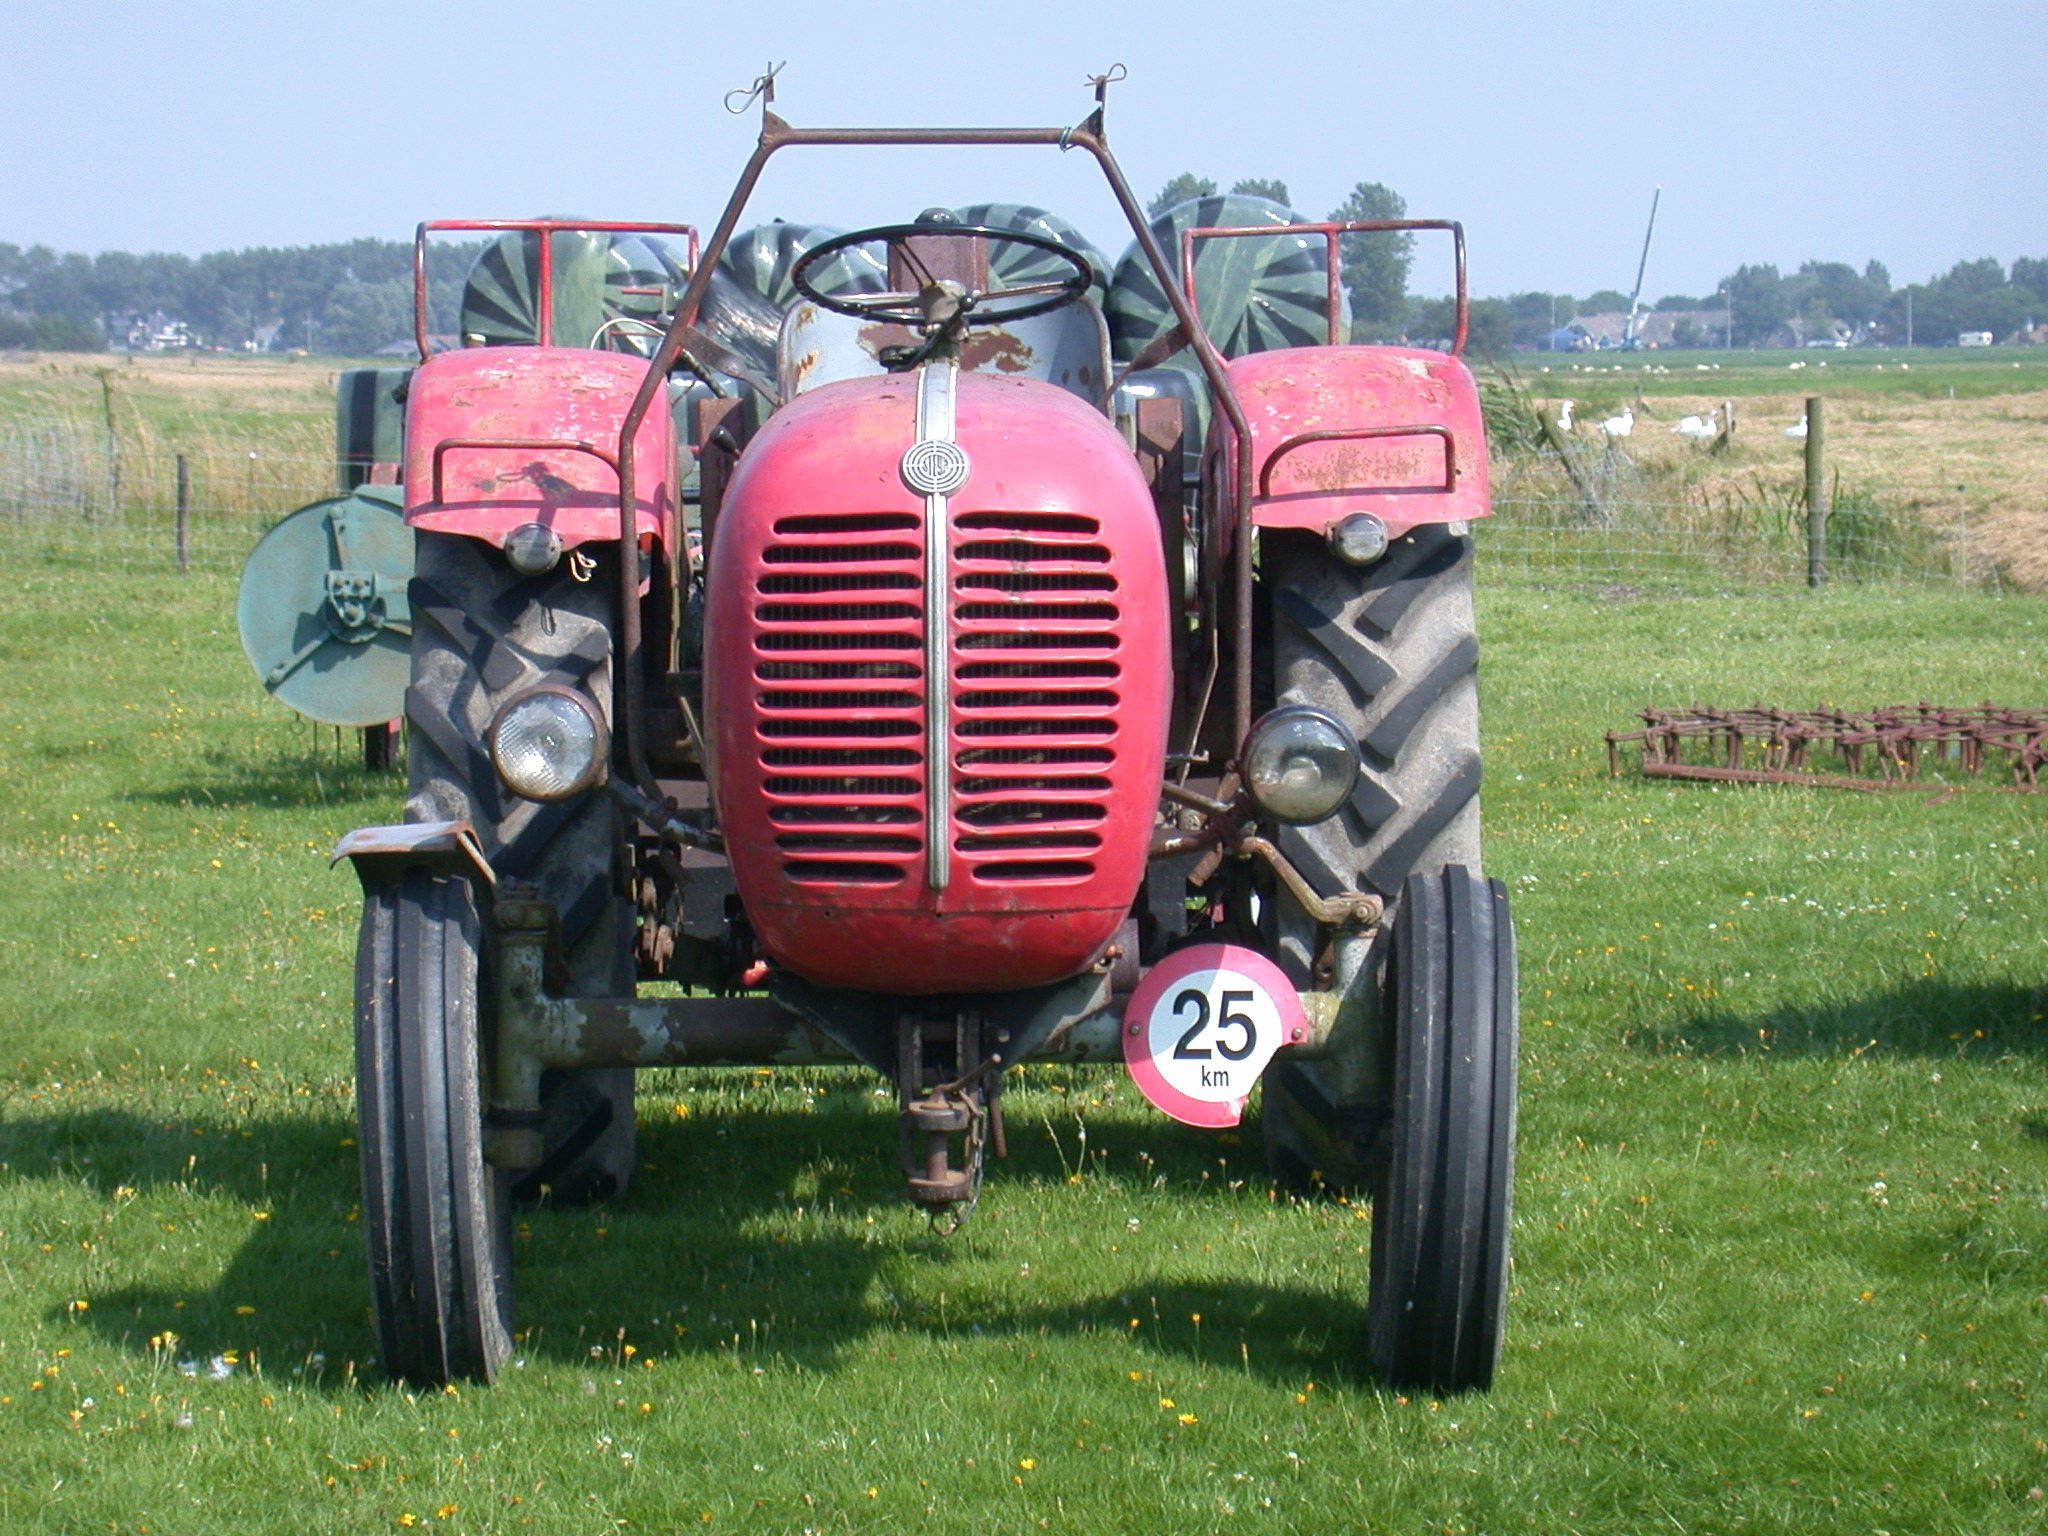 tractor engine red front tires farm equipment 25 km country